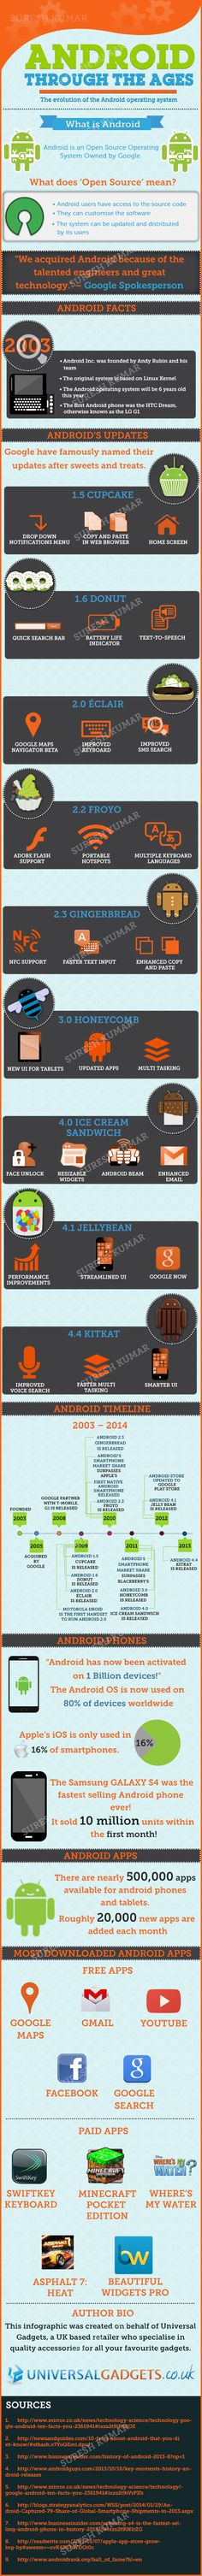 This infographic tells a brief history of Android and its Versions.